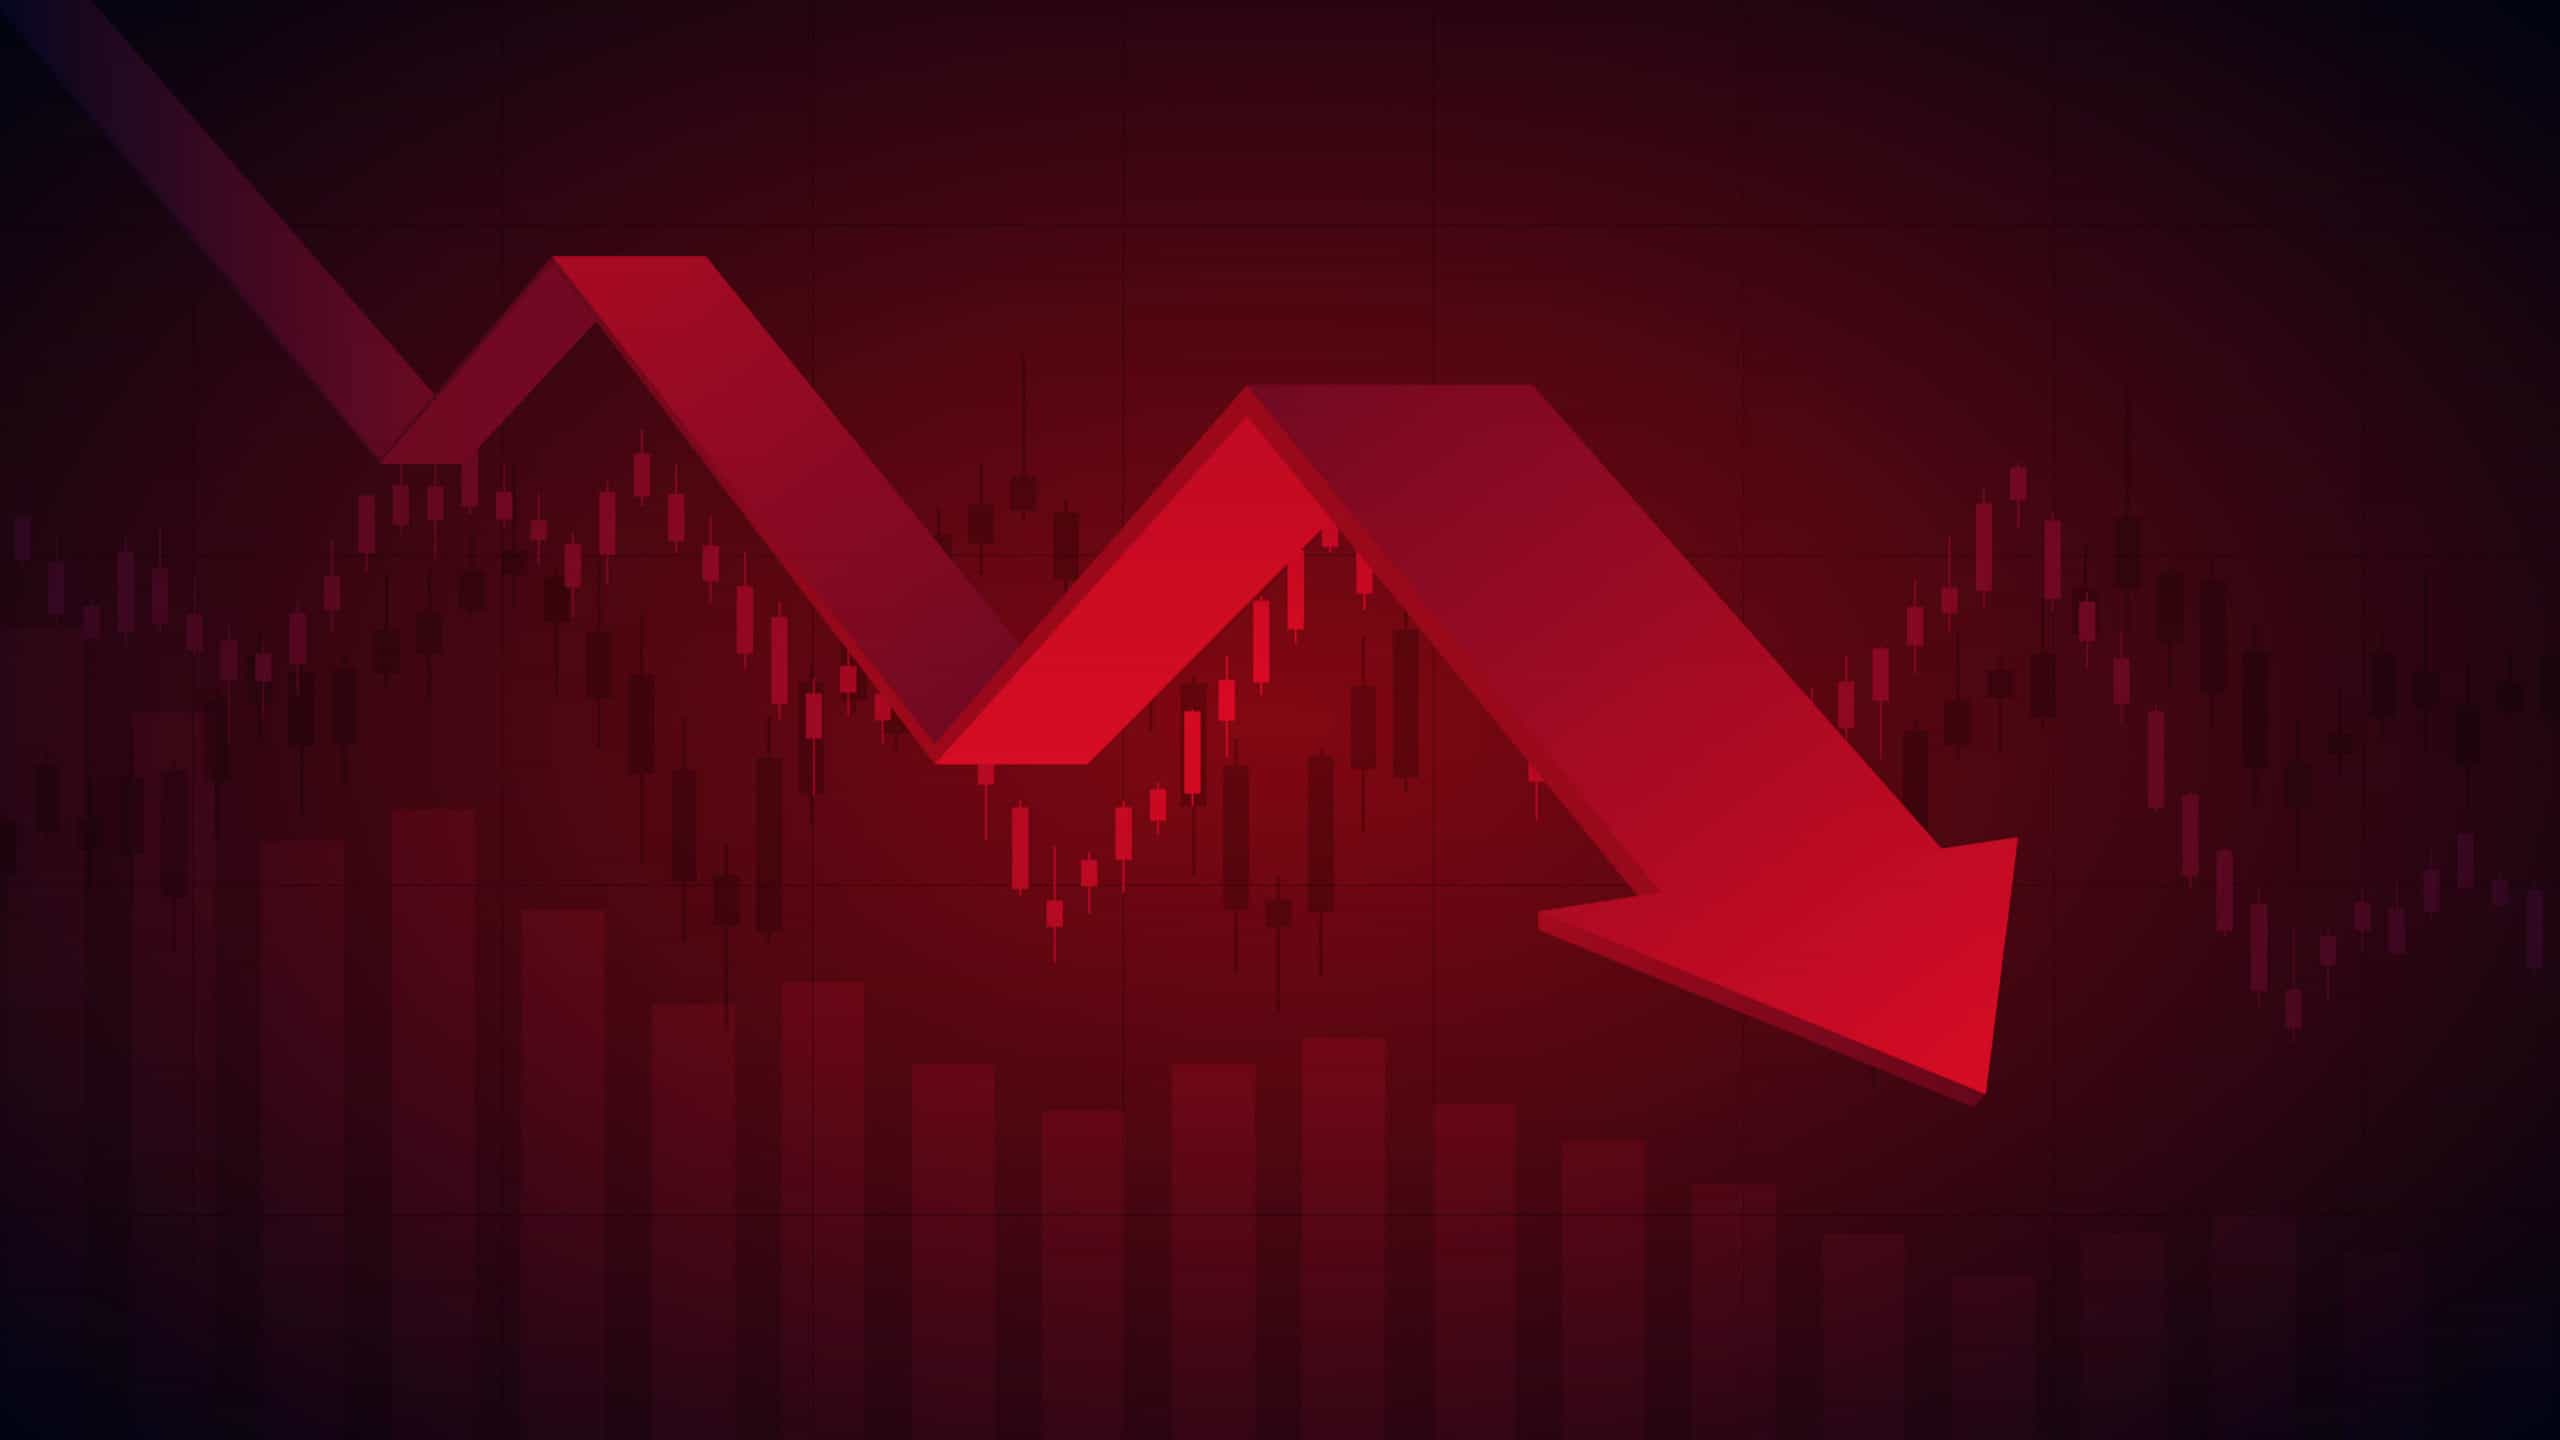 red arrow pointing down, falling share price